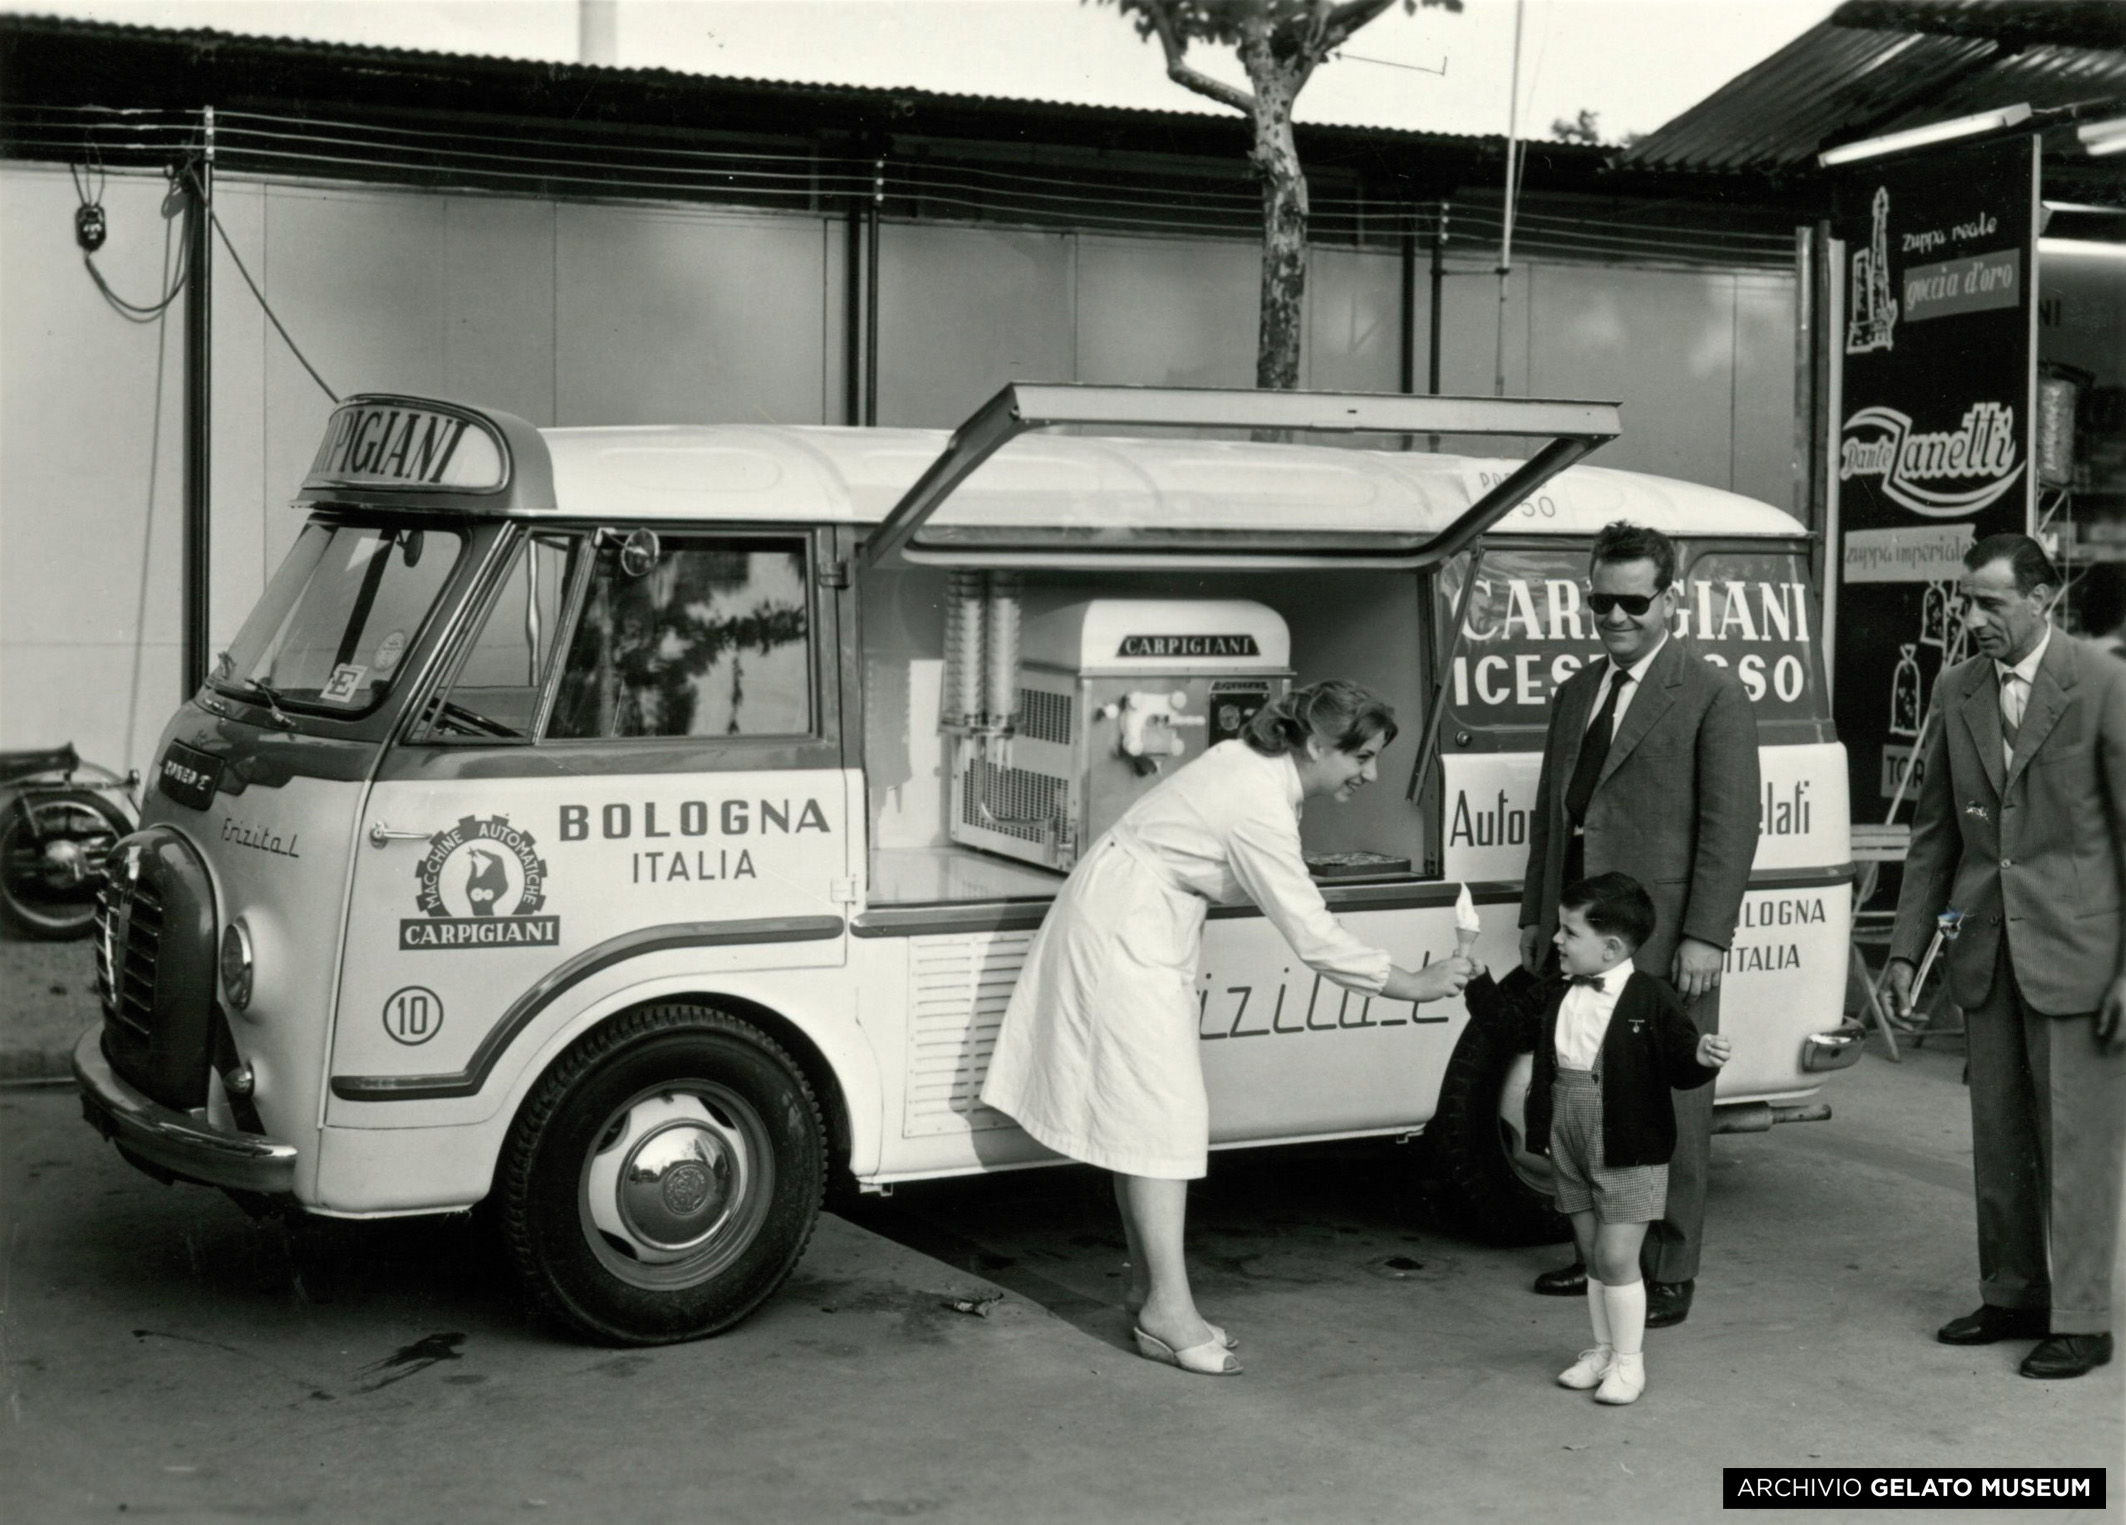 Caption: Gelato served from a Carpigiani-made gelato truck at the Bologna fair in 1958, Credit: Gelato Museum